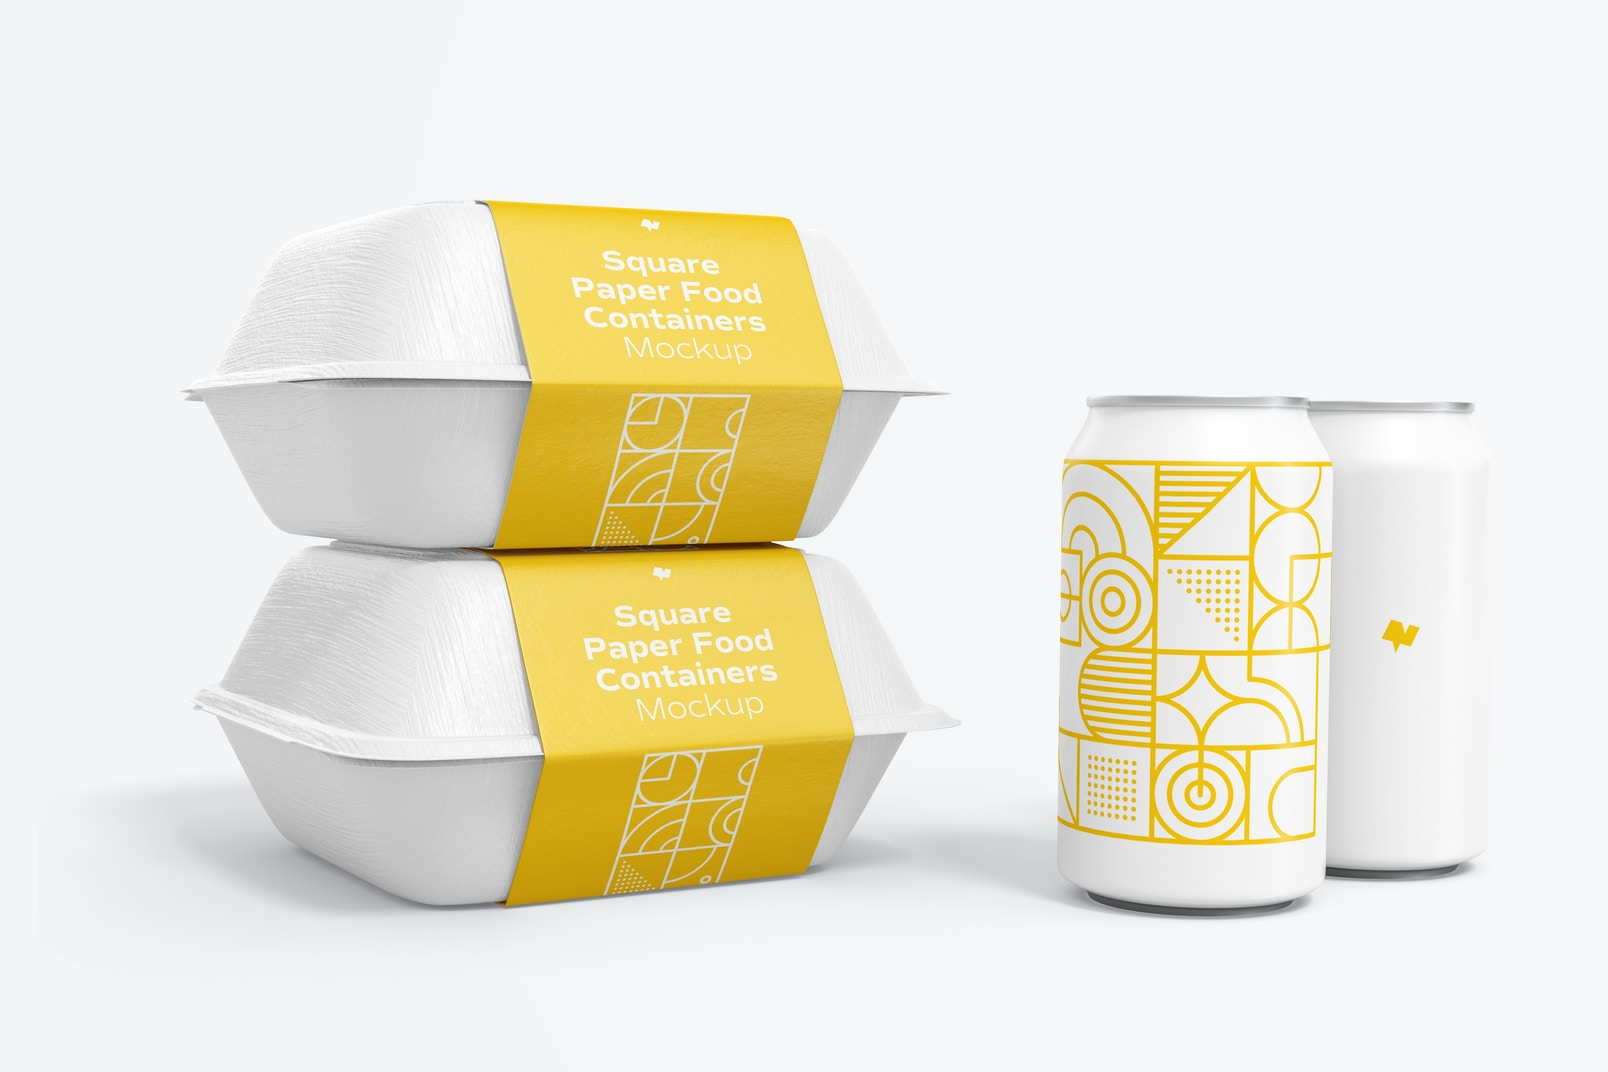 Square Paper Food Containers Set Mockup with Can